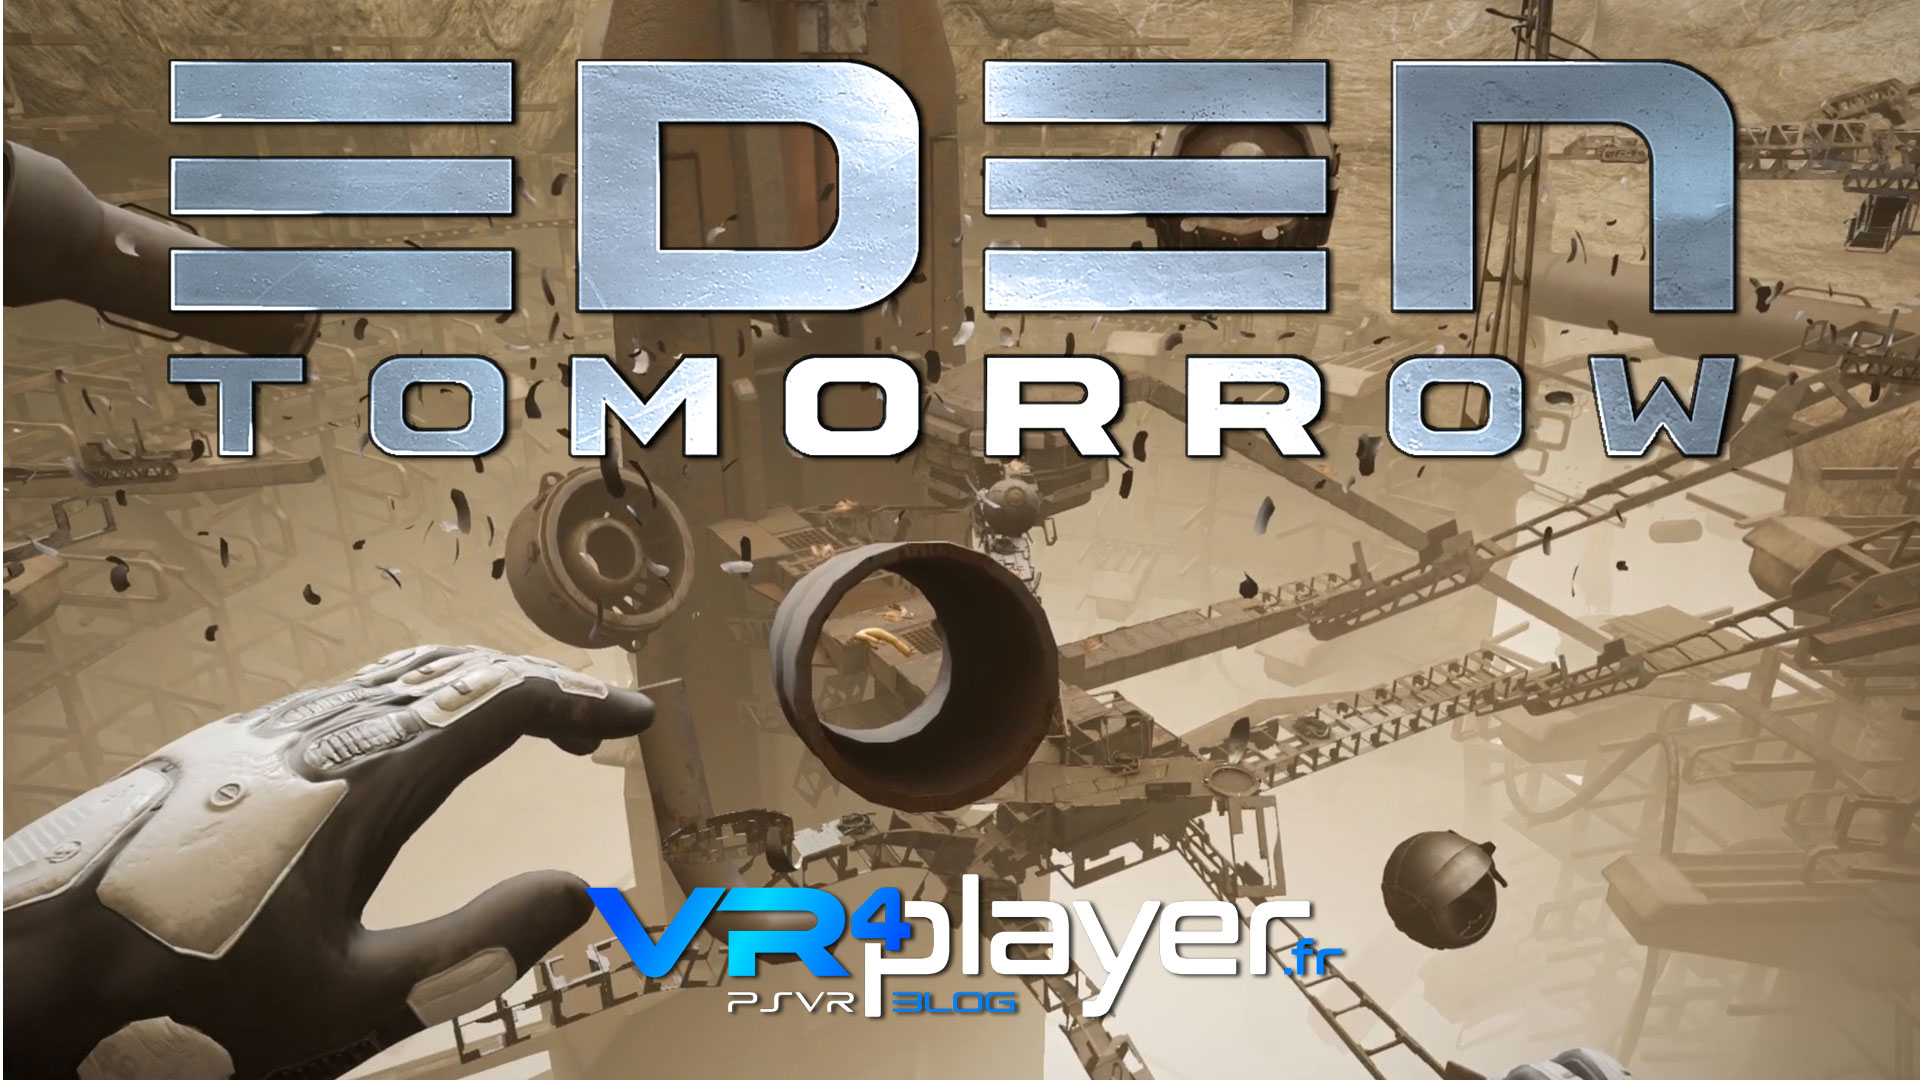 eden Tomorrow exclu PSVR - vr4player.fr